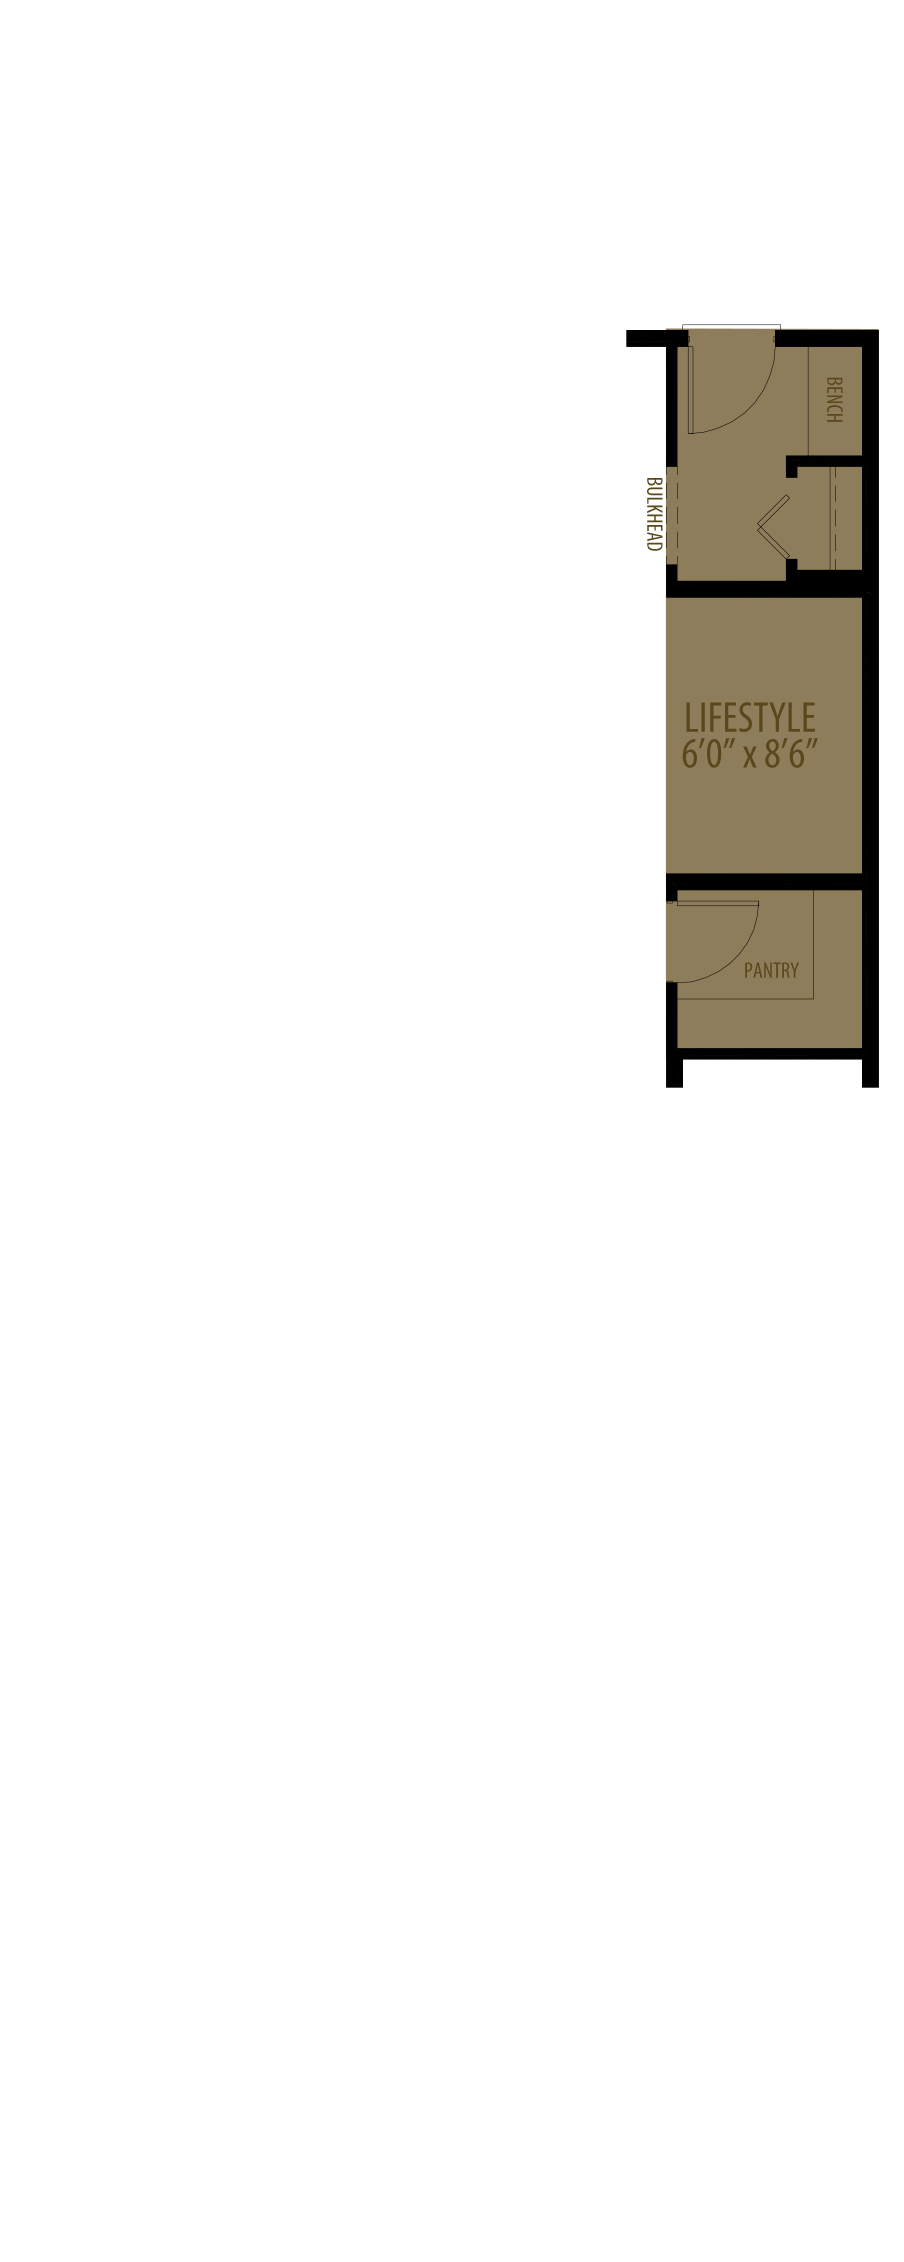 Lifestyle Room